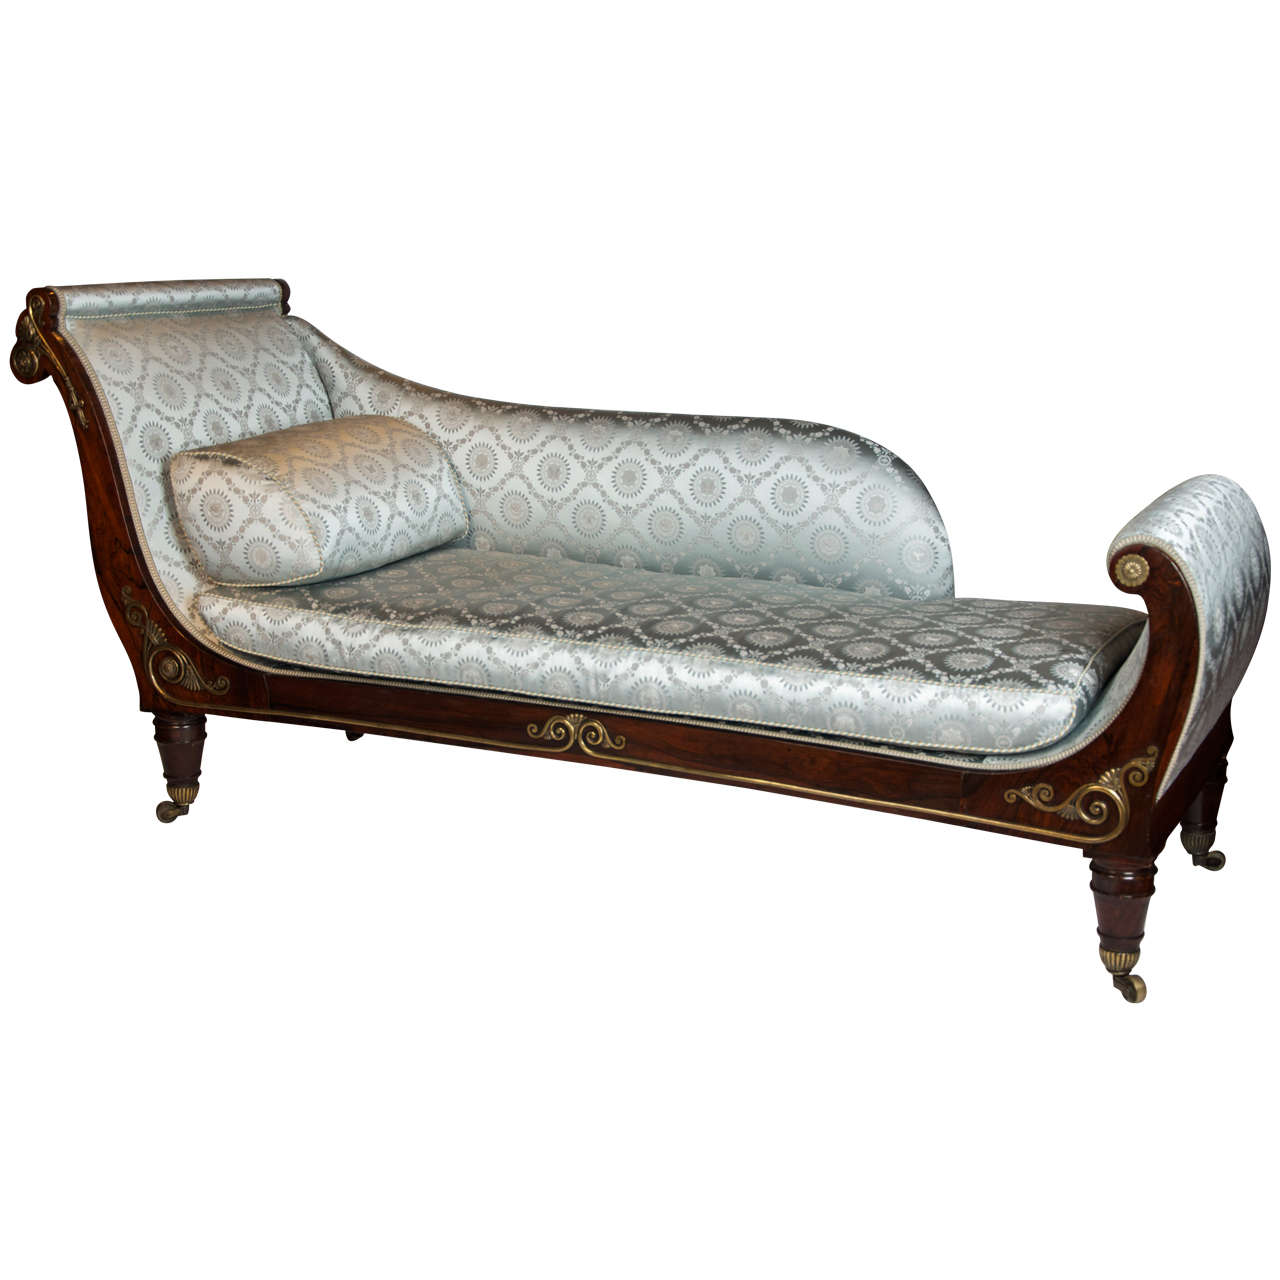 19th Century High-Style Regency Period Library Couch or Chaise Lounge